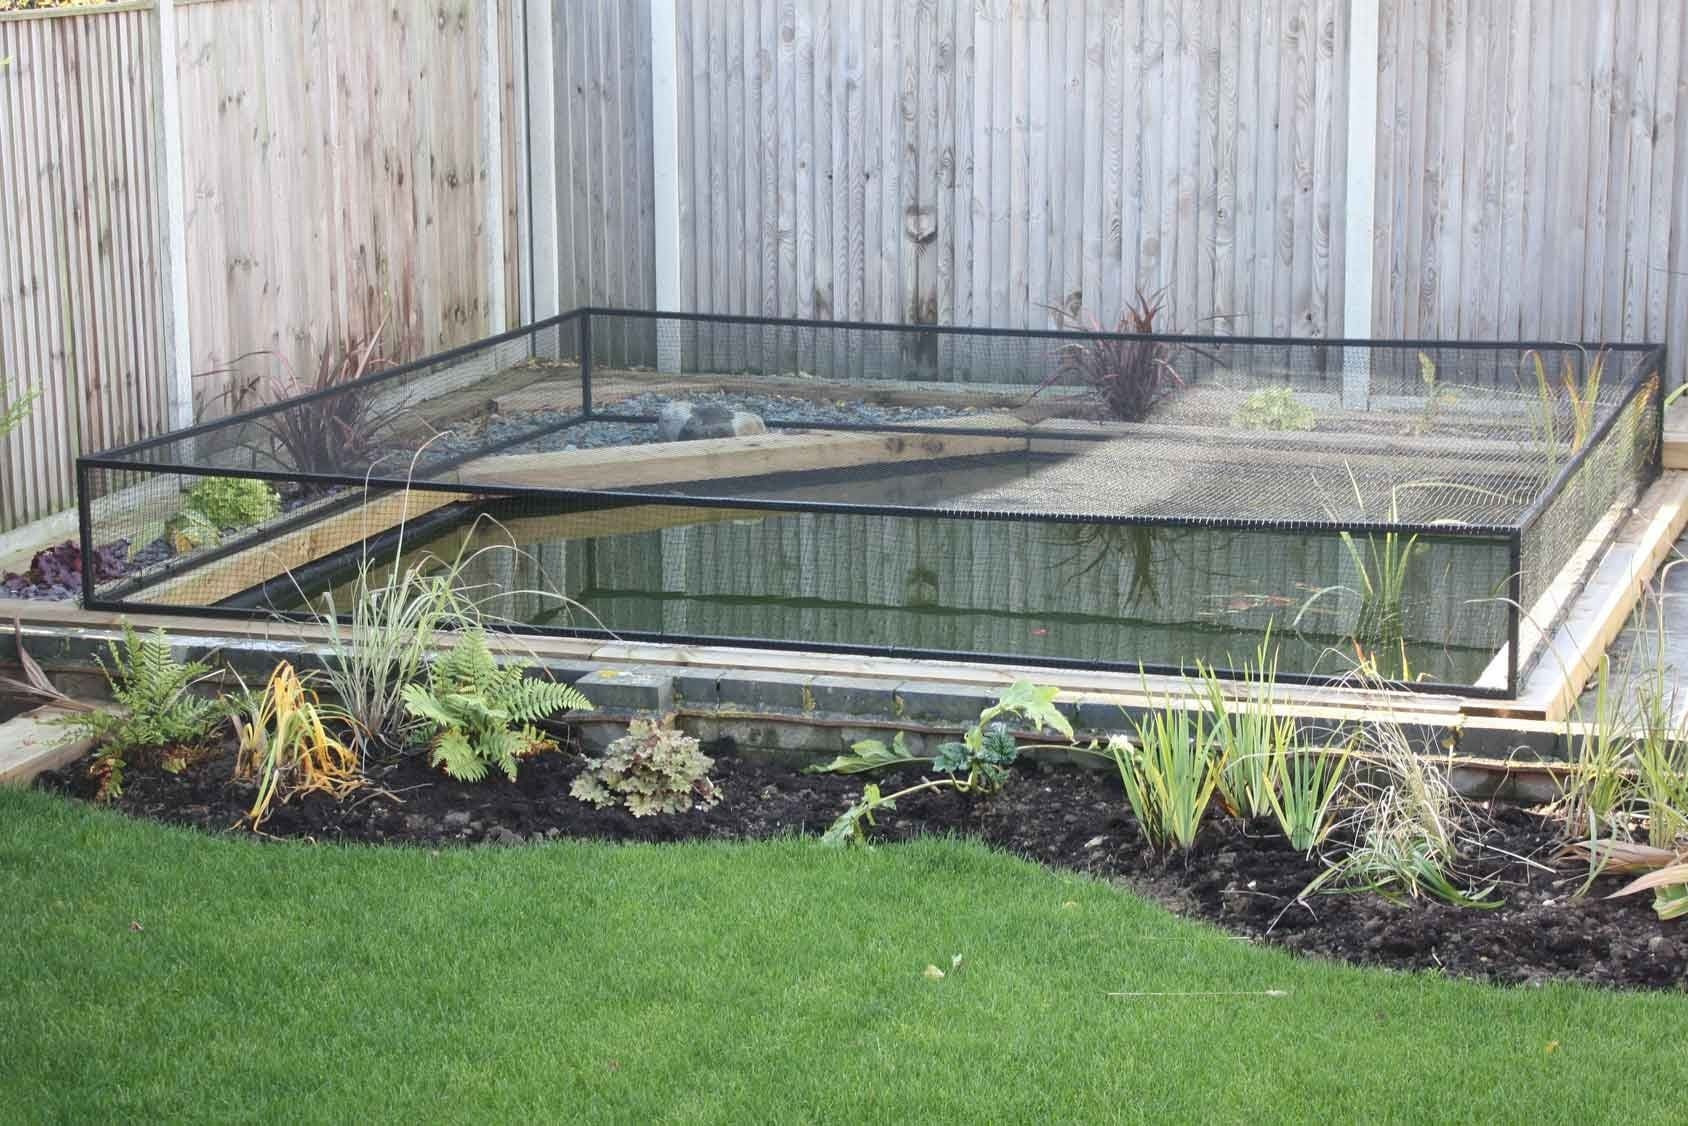 Raised Steel Pond Cover in 2020 (With images) Pond